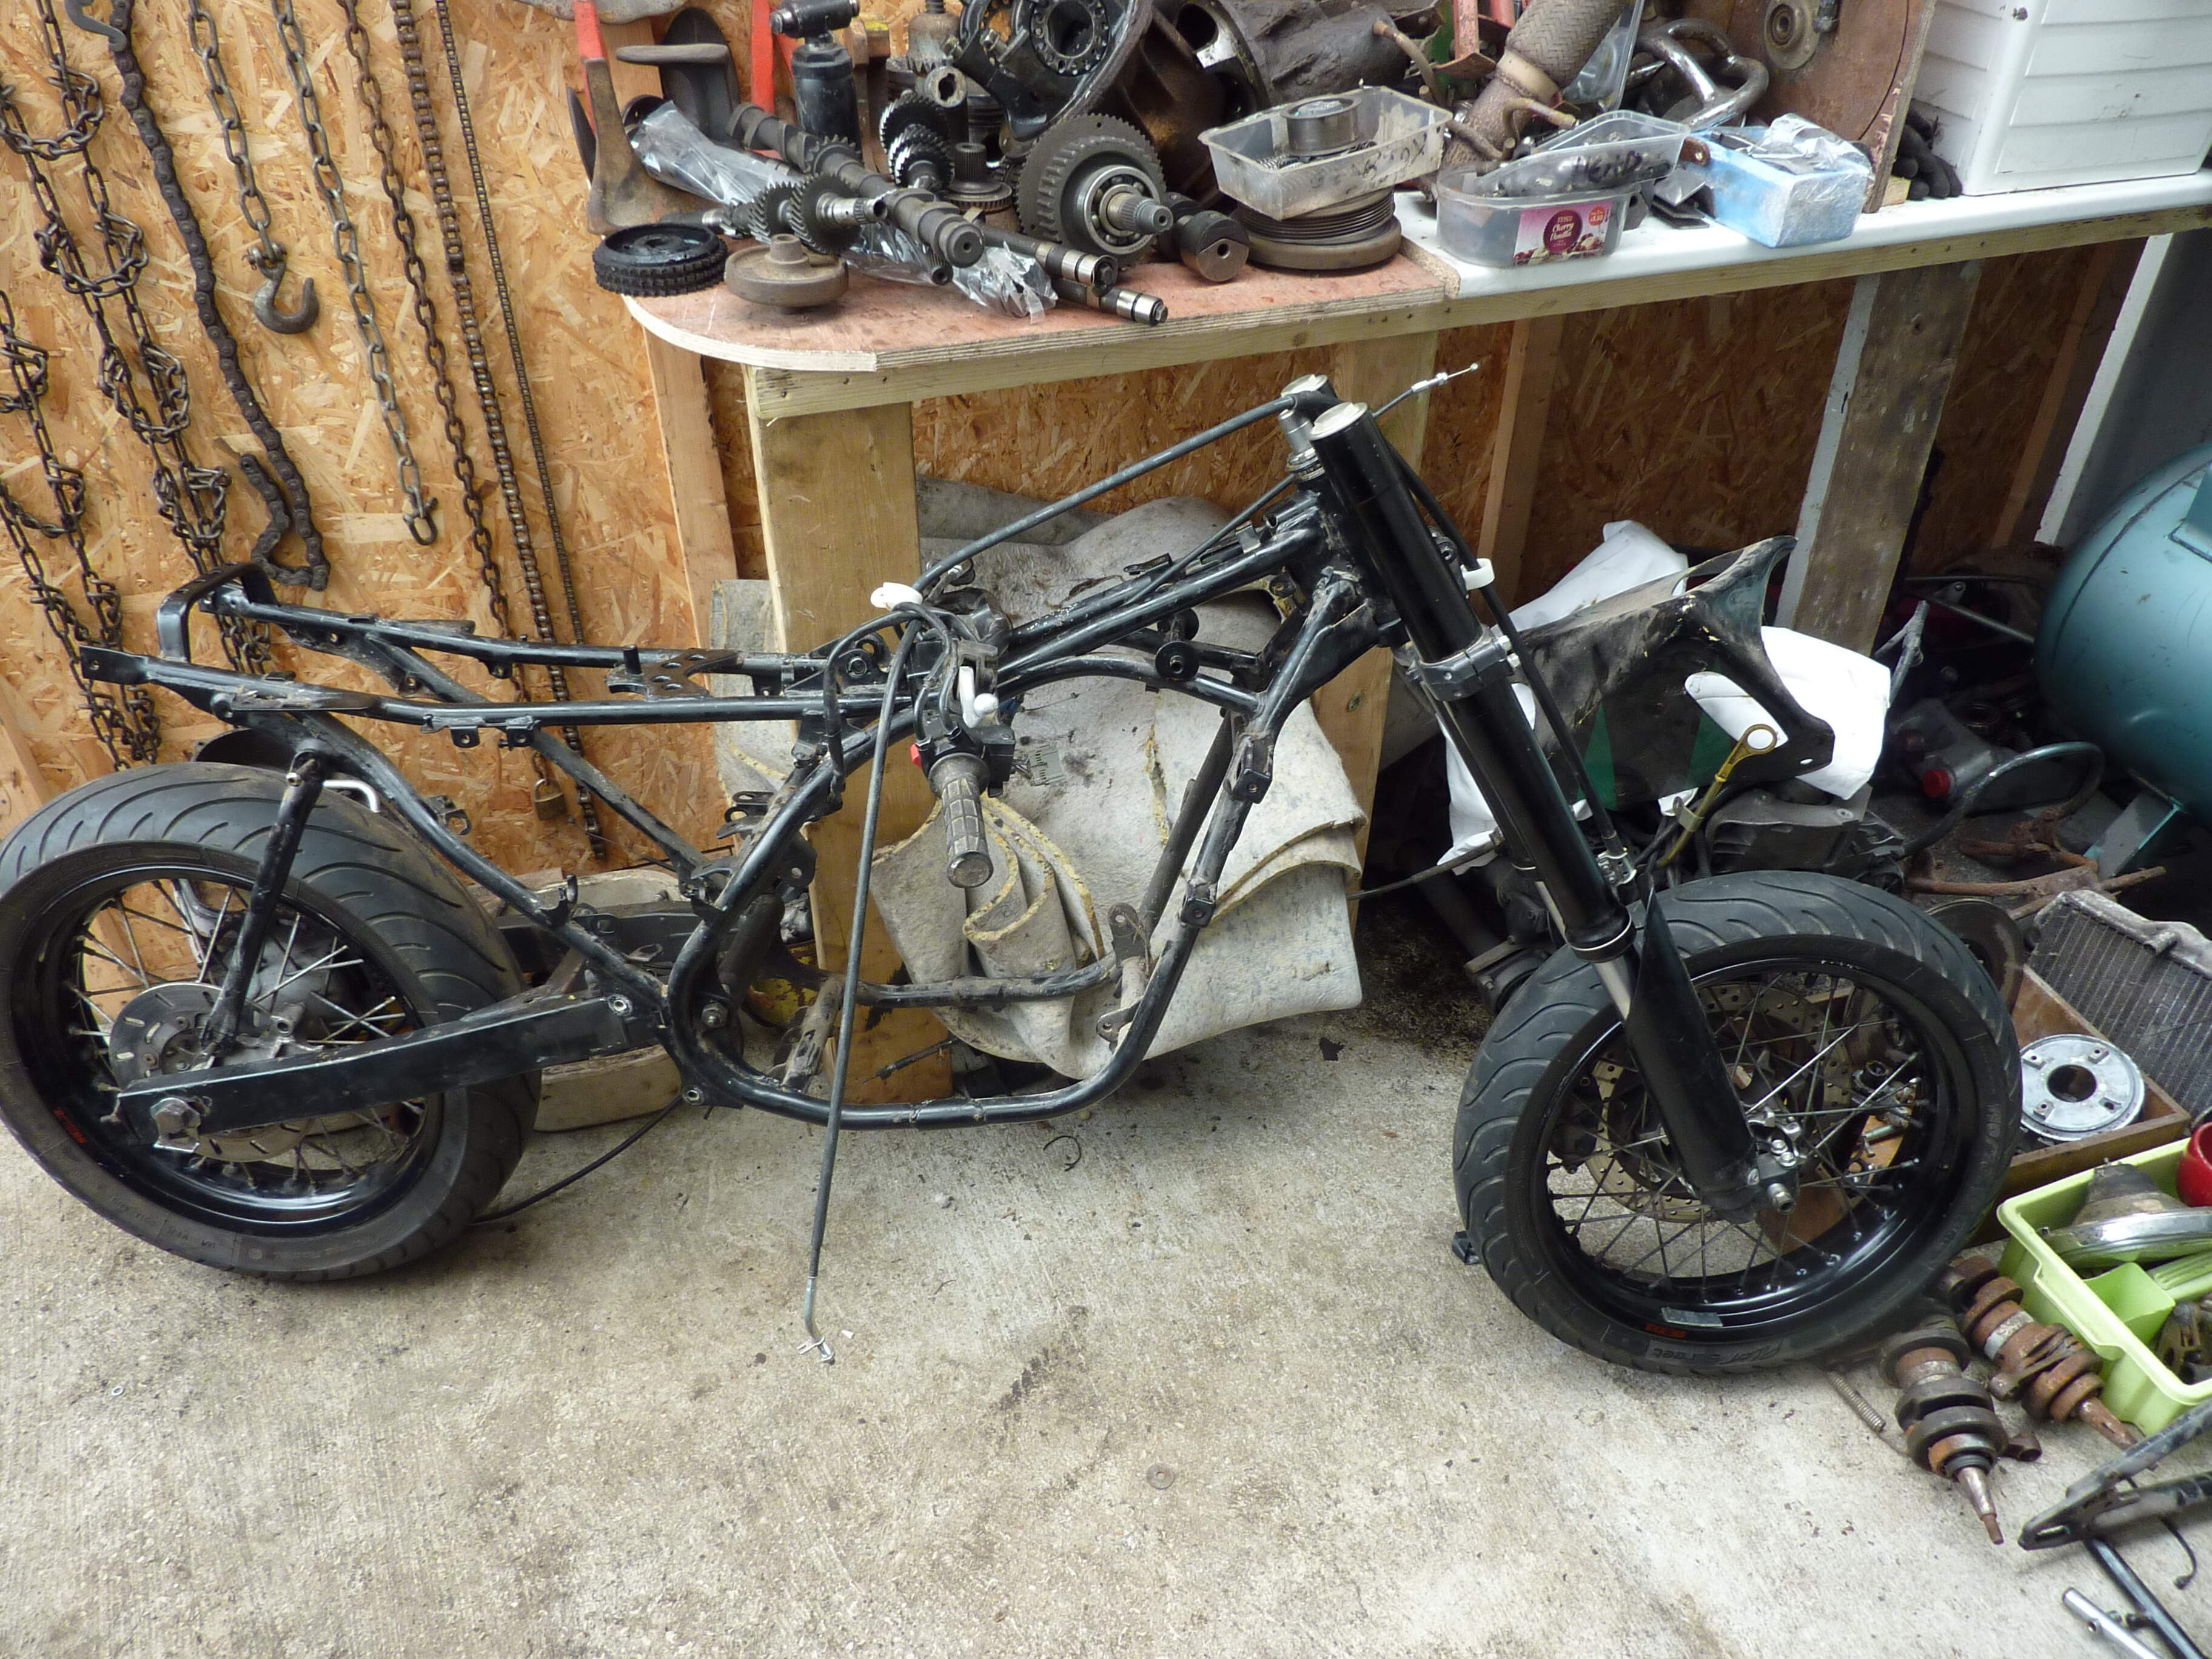 Frame modifications, CRF front end, WR rear end and wheels